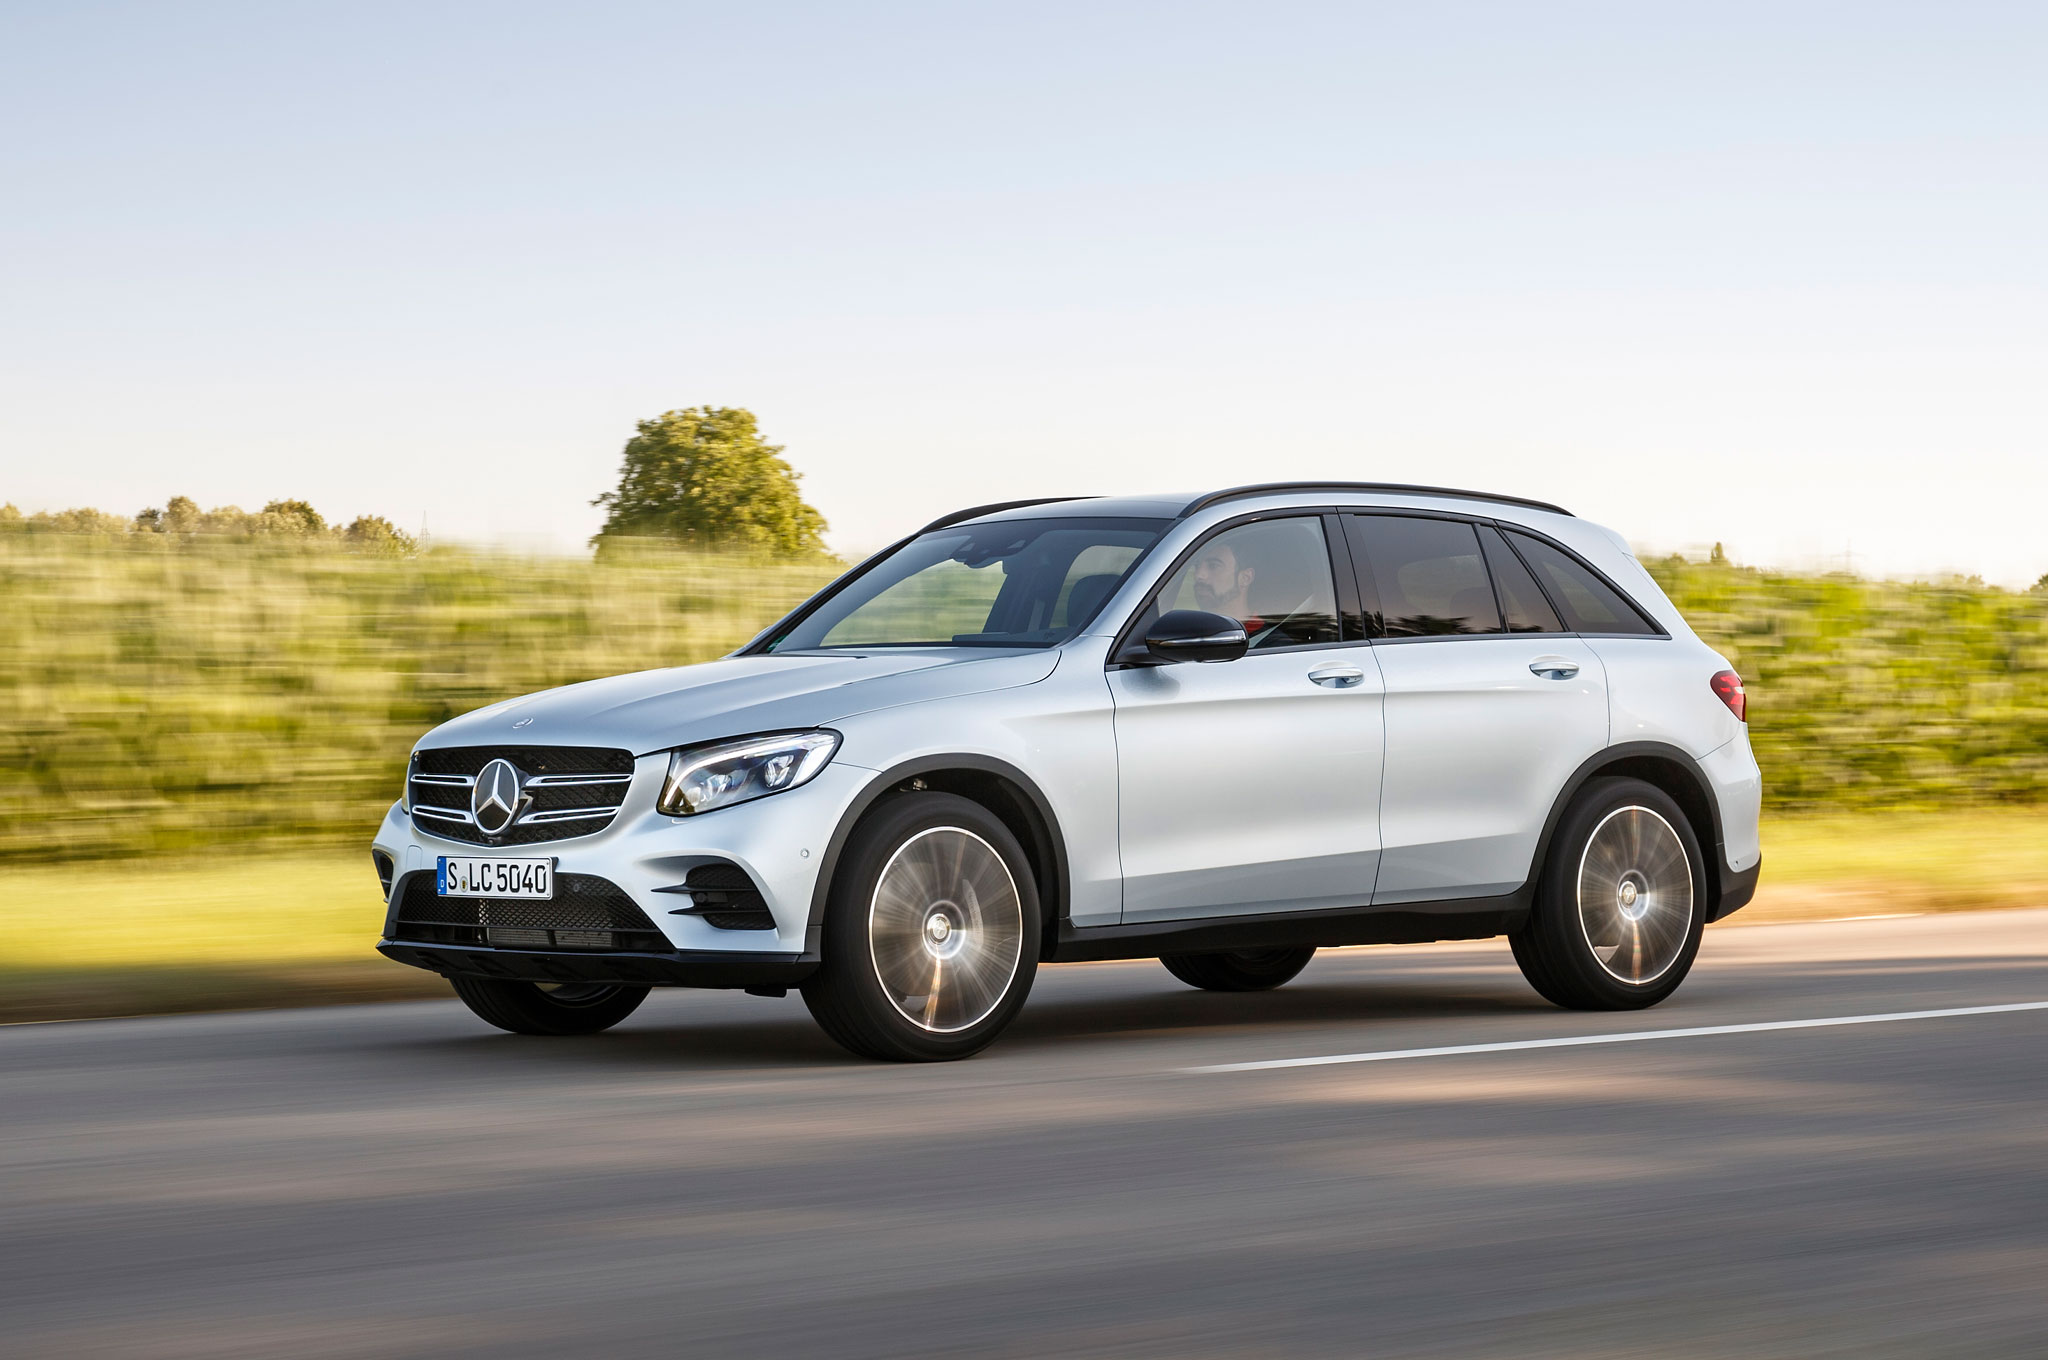 2016 mercedes benz glc300 starts at 39 875 4matic at 41 875 for 2016 mercedes benz ml350